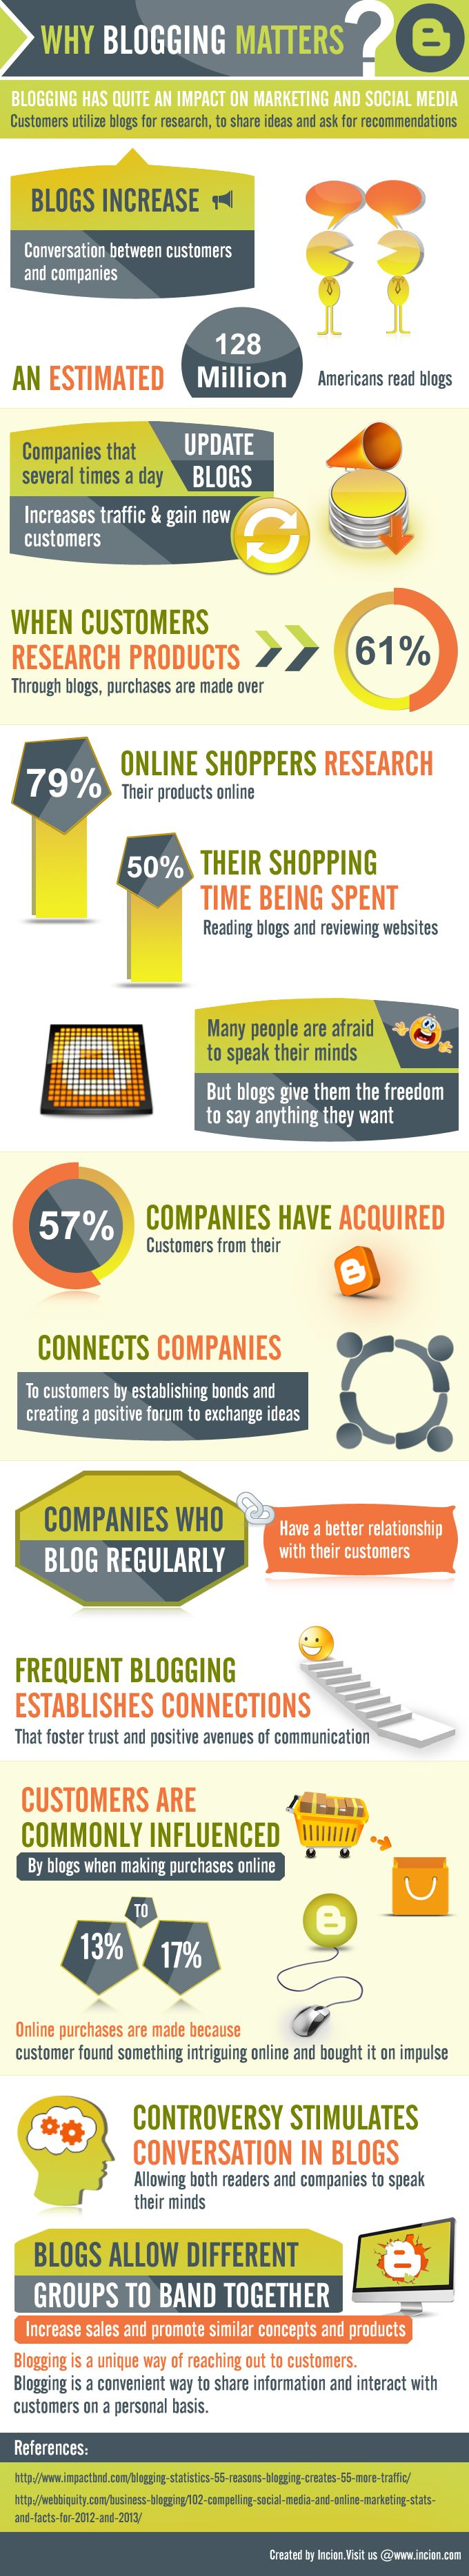 Why #Blogging Matters?